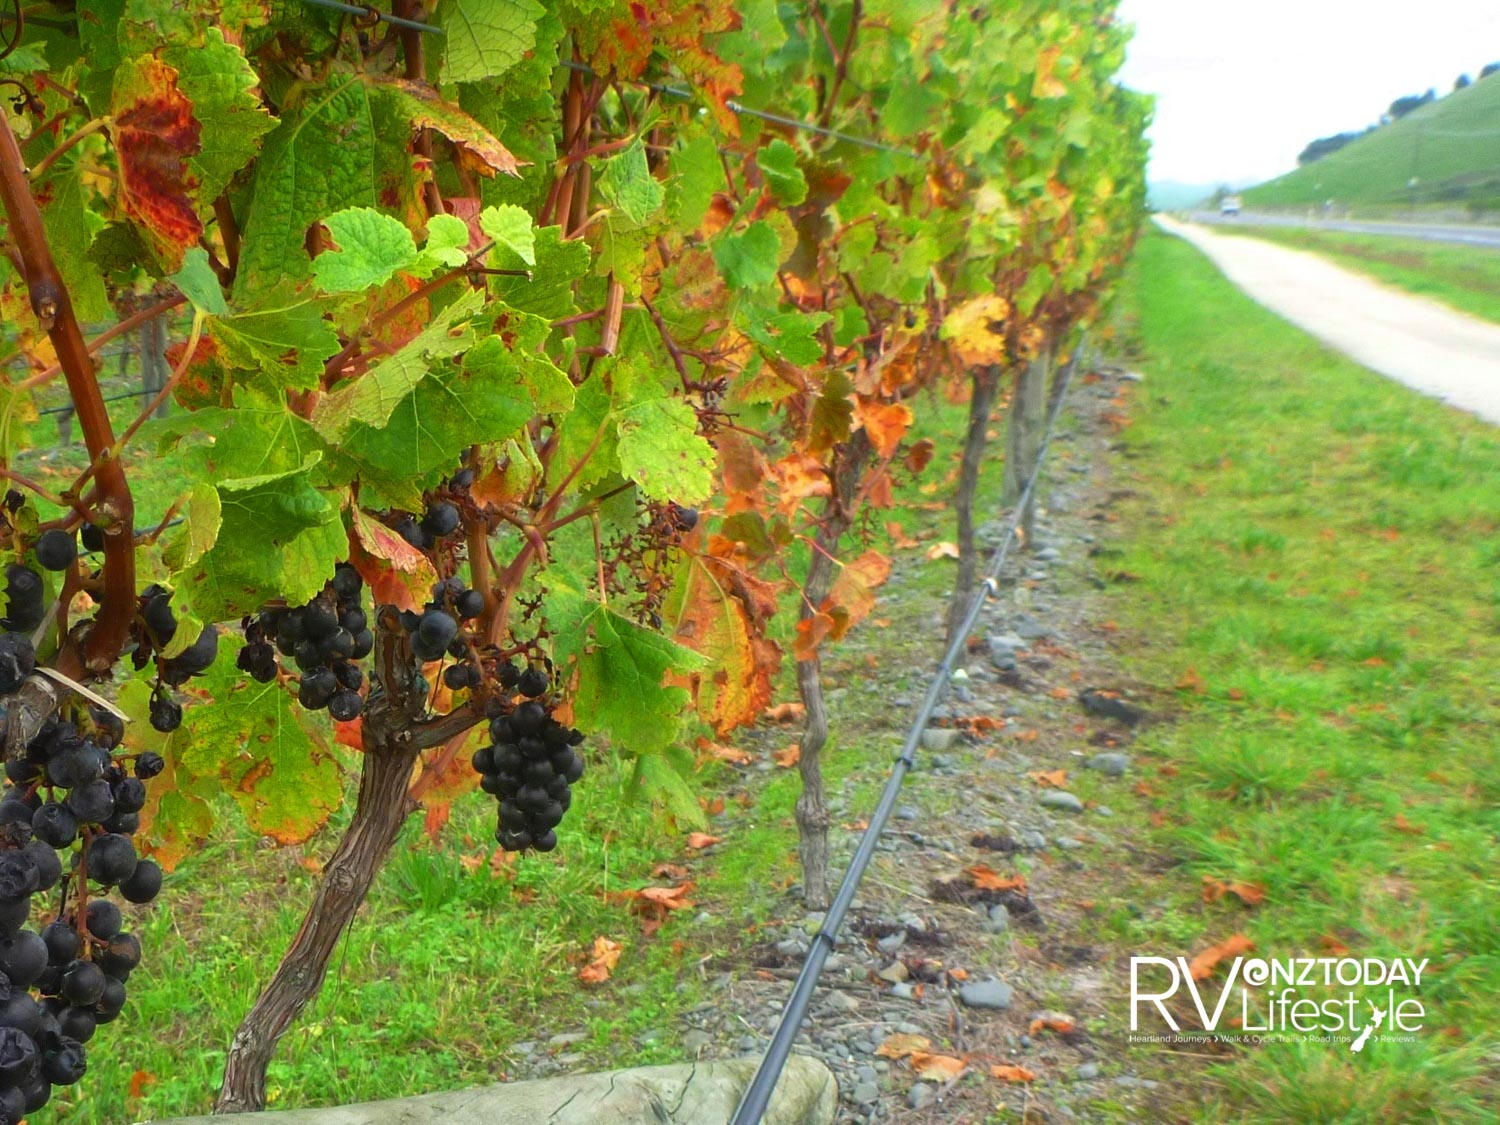 The Wineries Ride makes a glorious loop around the vineyards